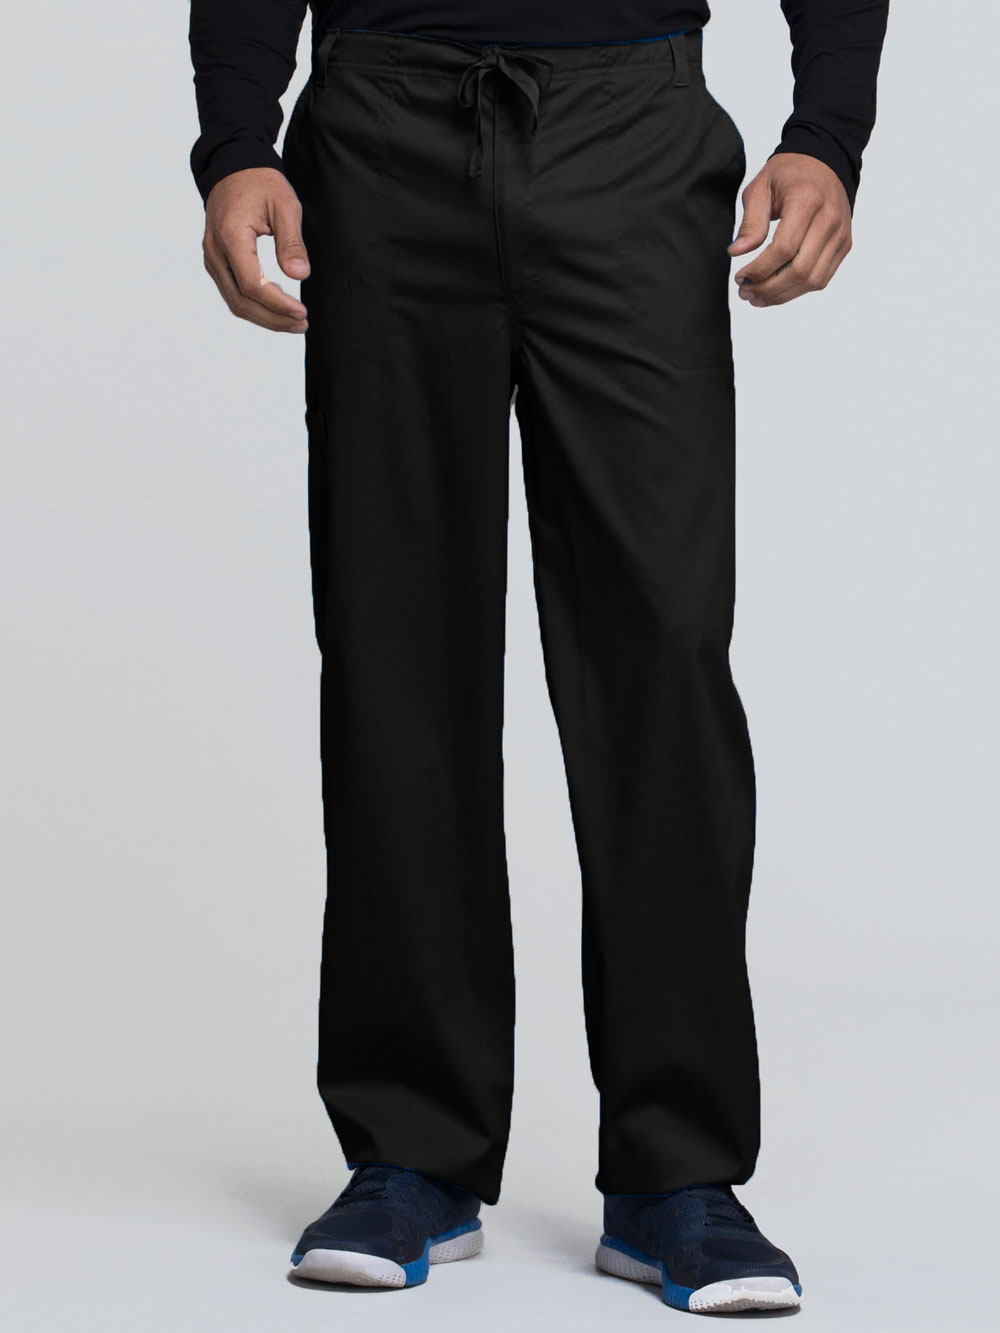 Luxe Men's Fly Front Drawstring Pant